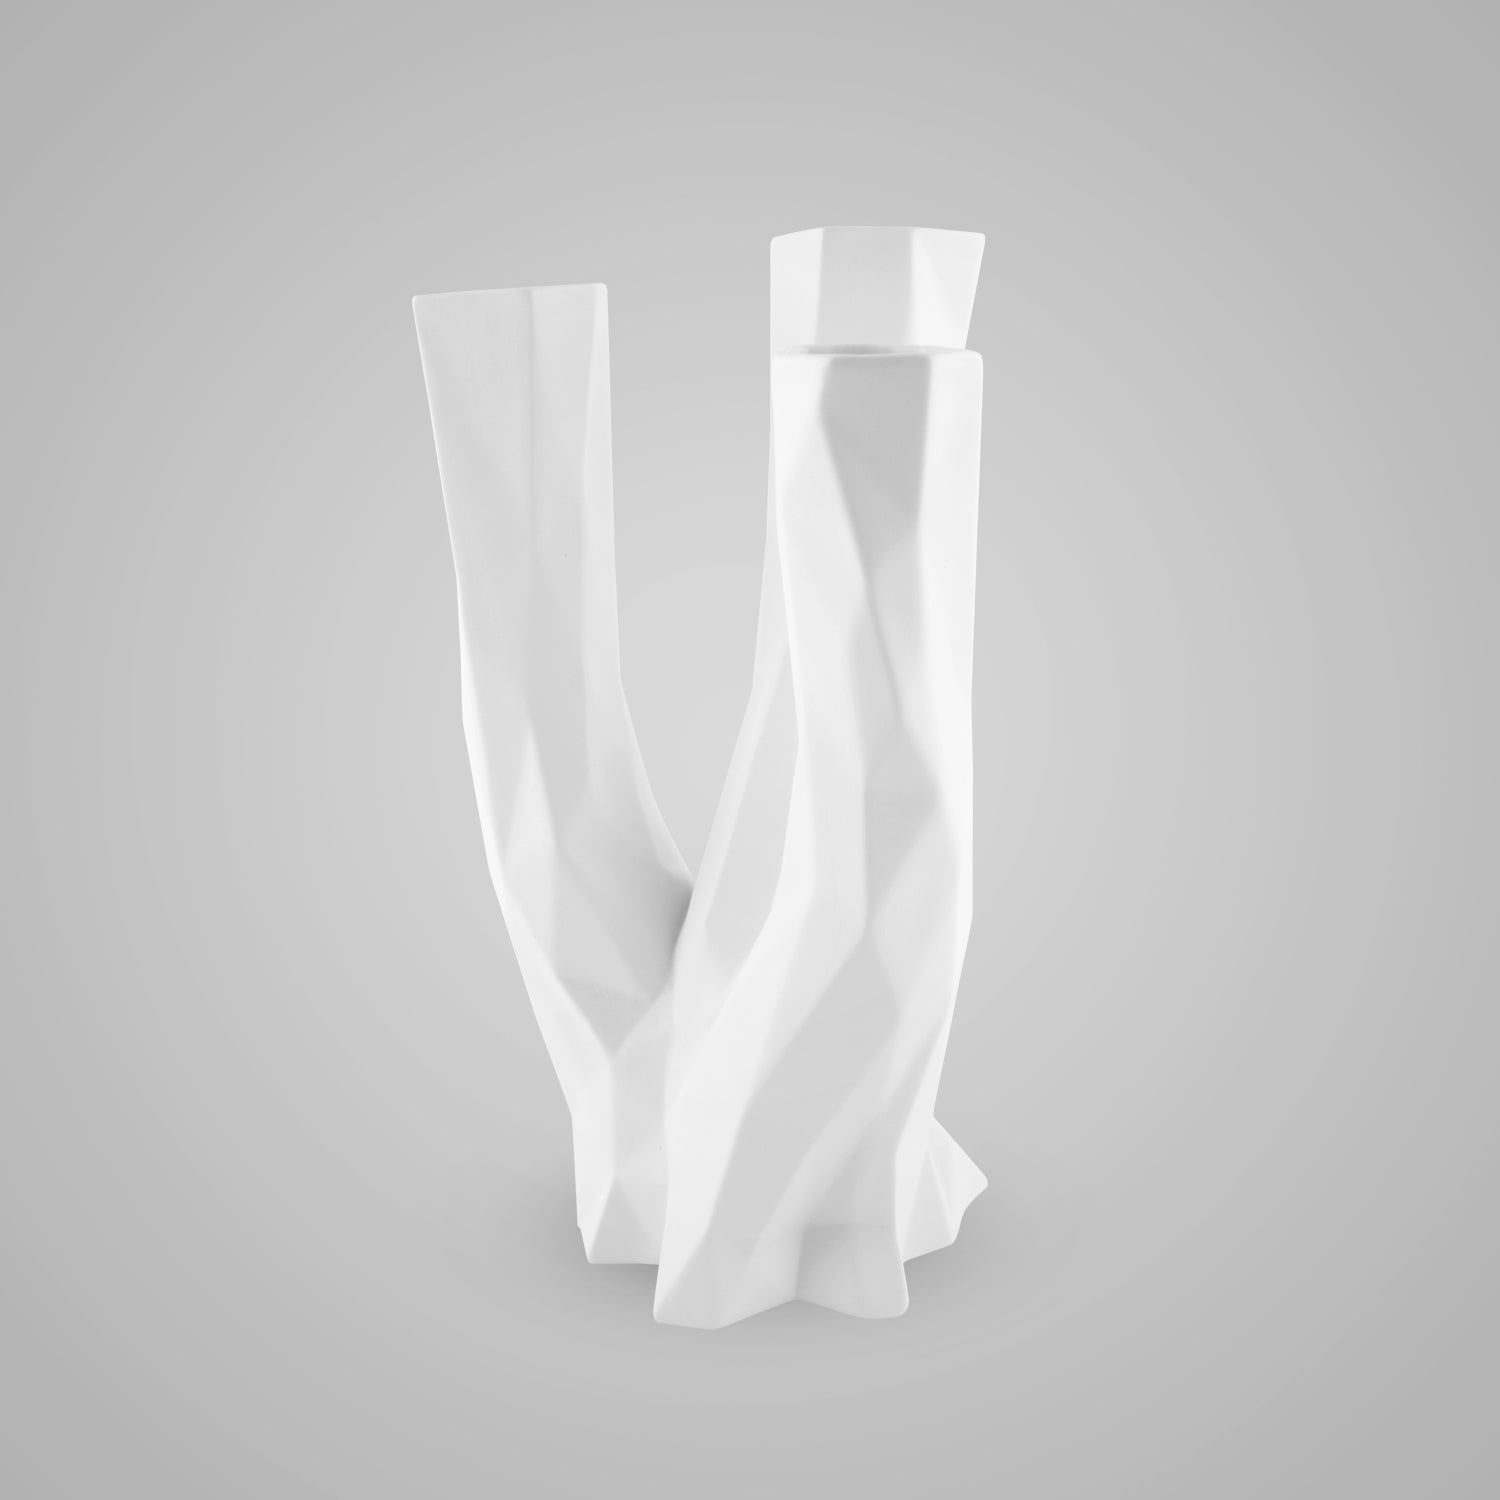 Polygono Triangle Vase 25 cm - Goebel